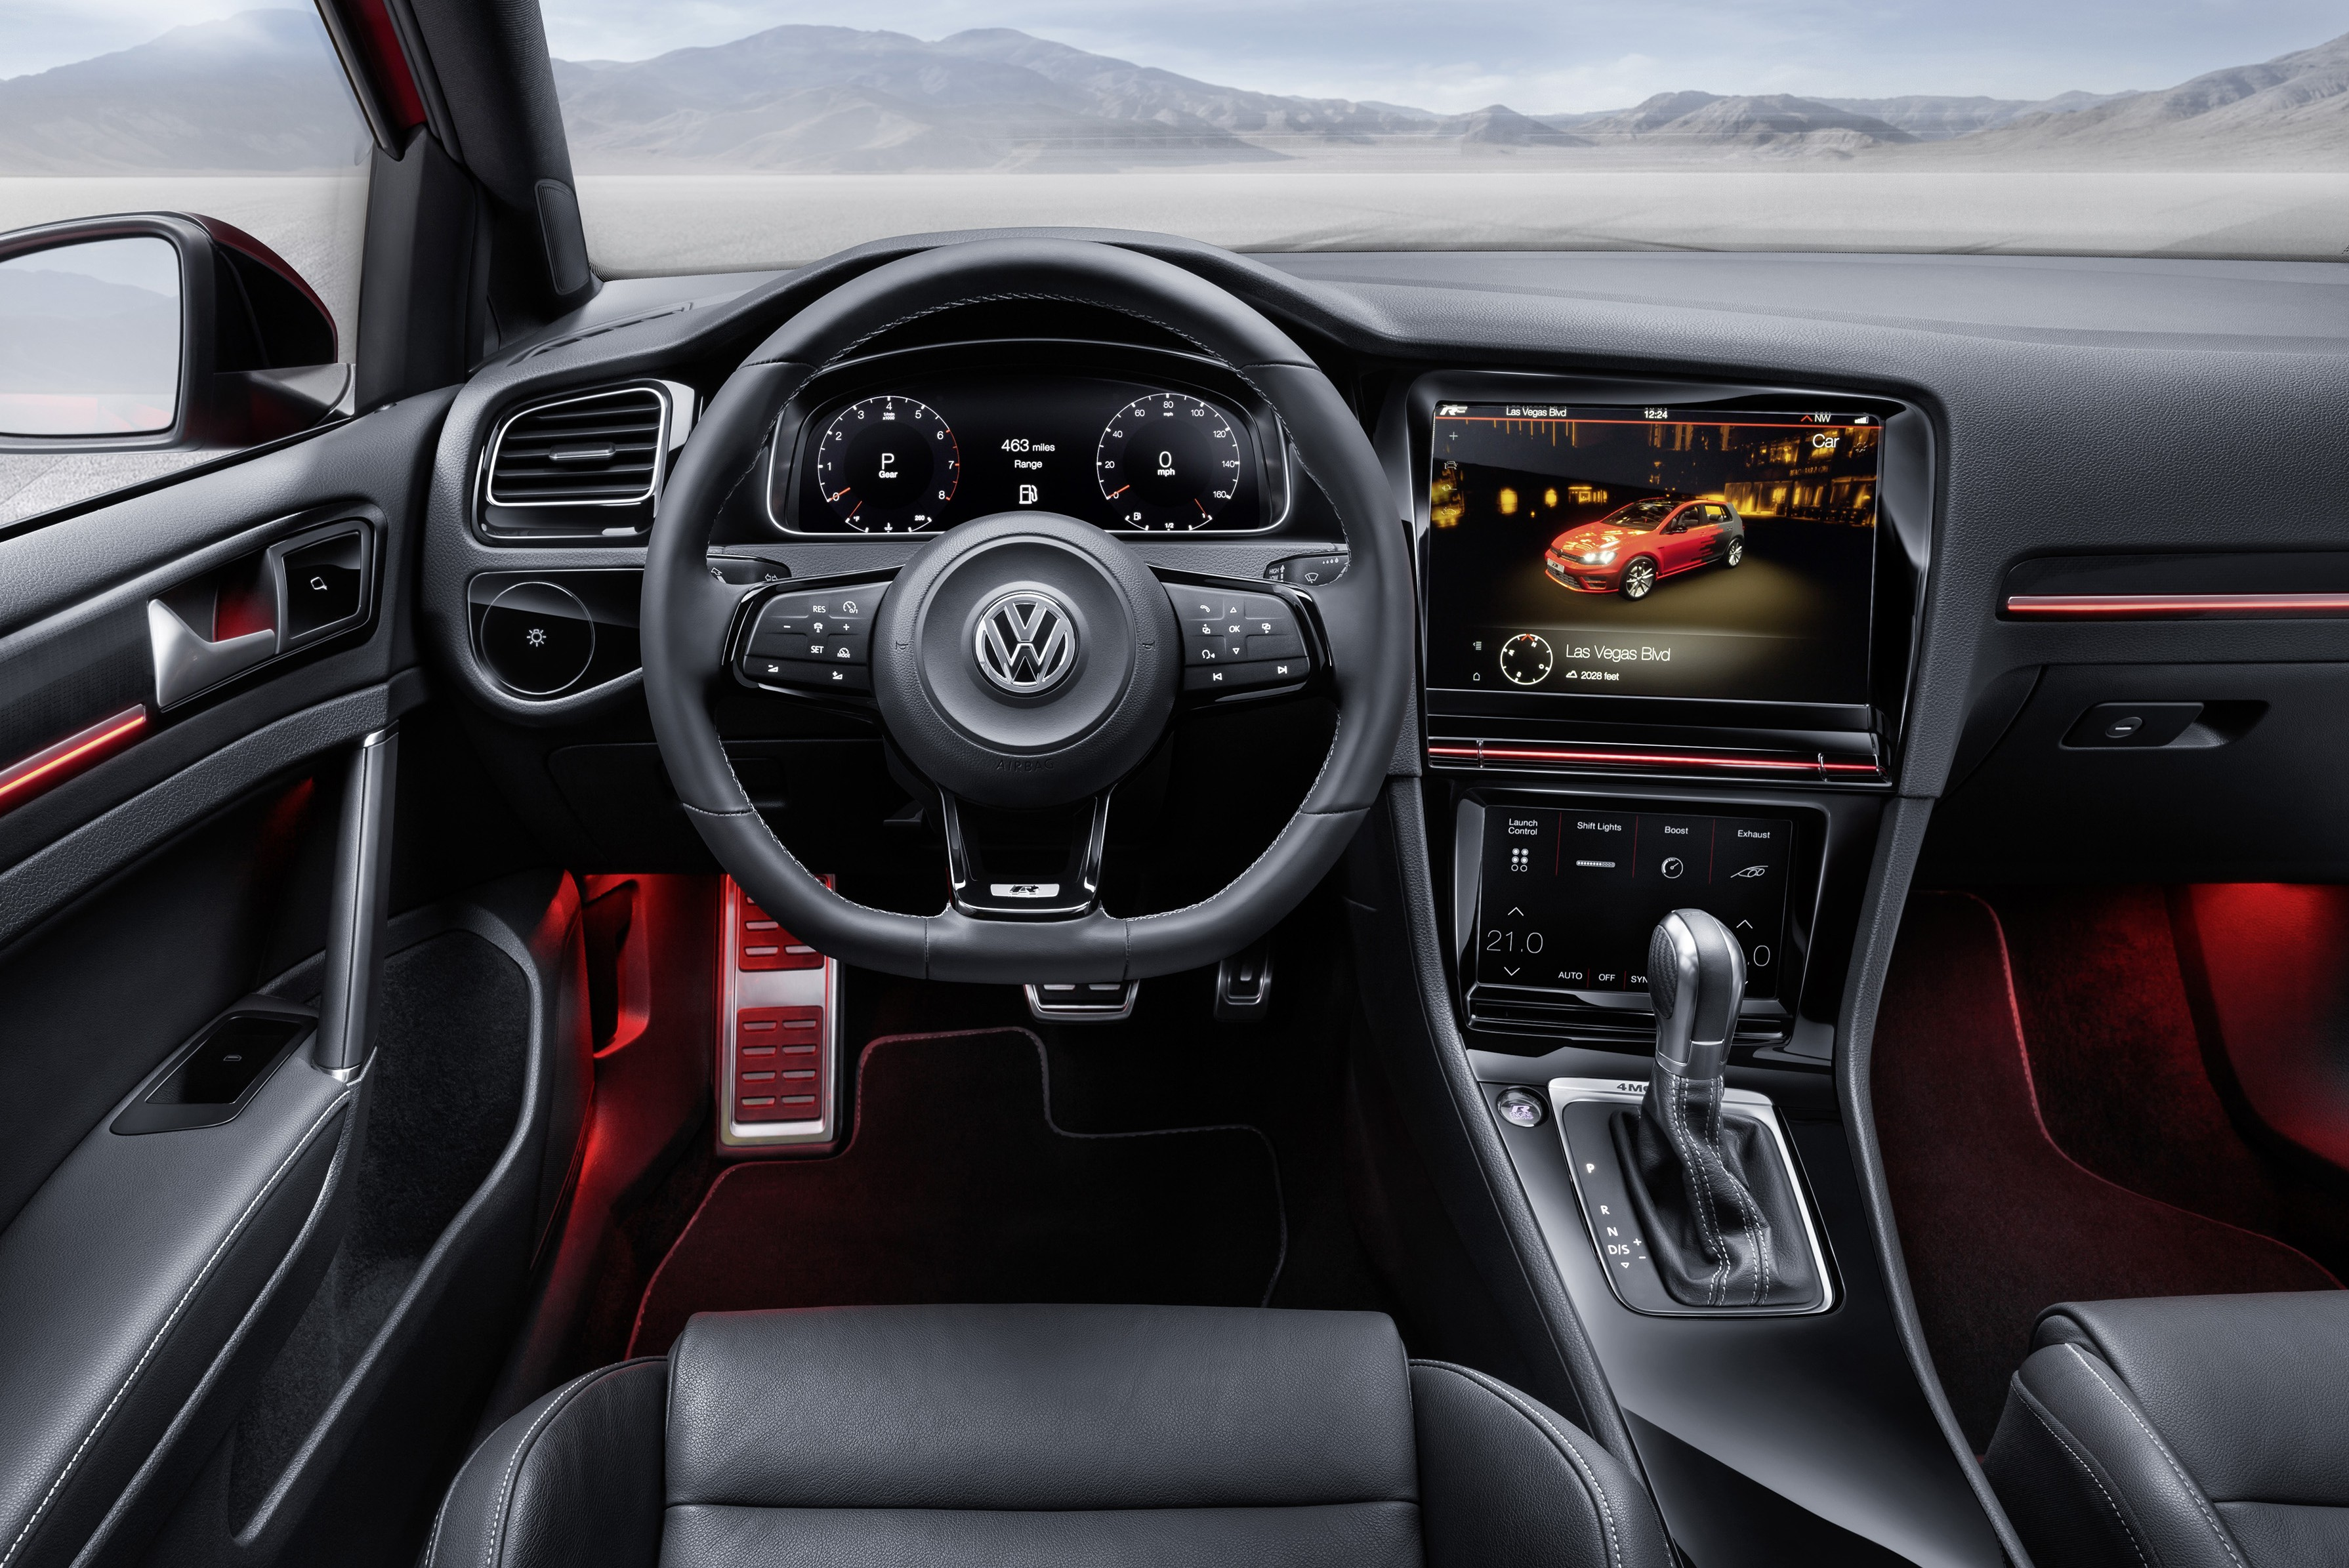 volkswagen golf r touch a gesture operated future paul. Black Bedroom Furniture Sets. Home Design Ideas